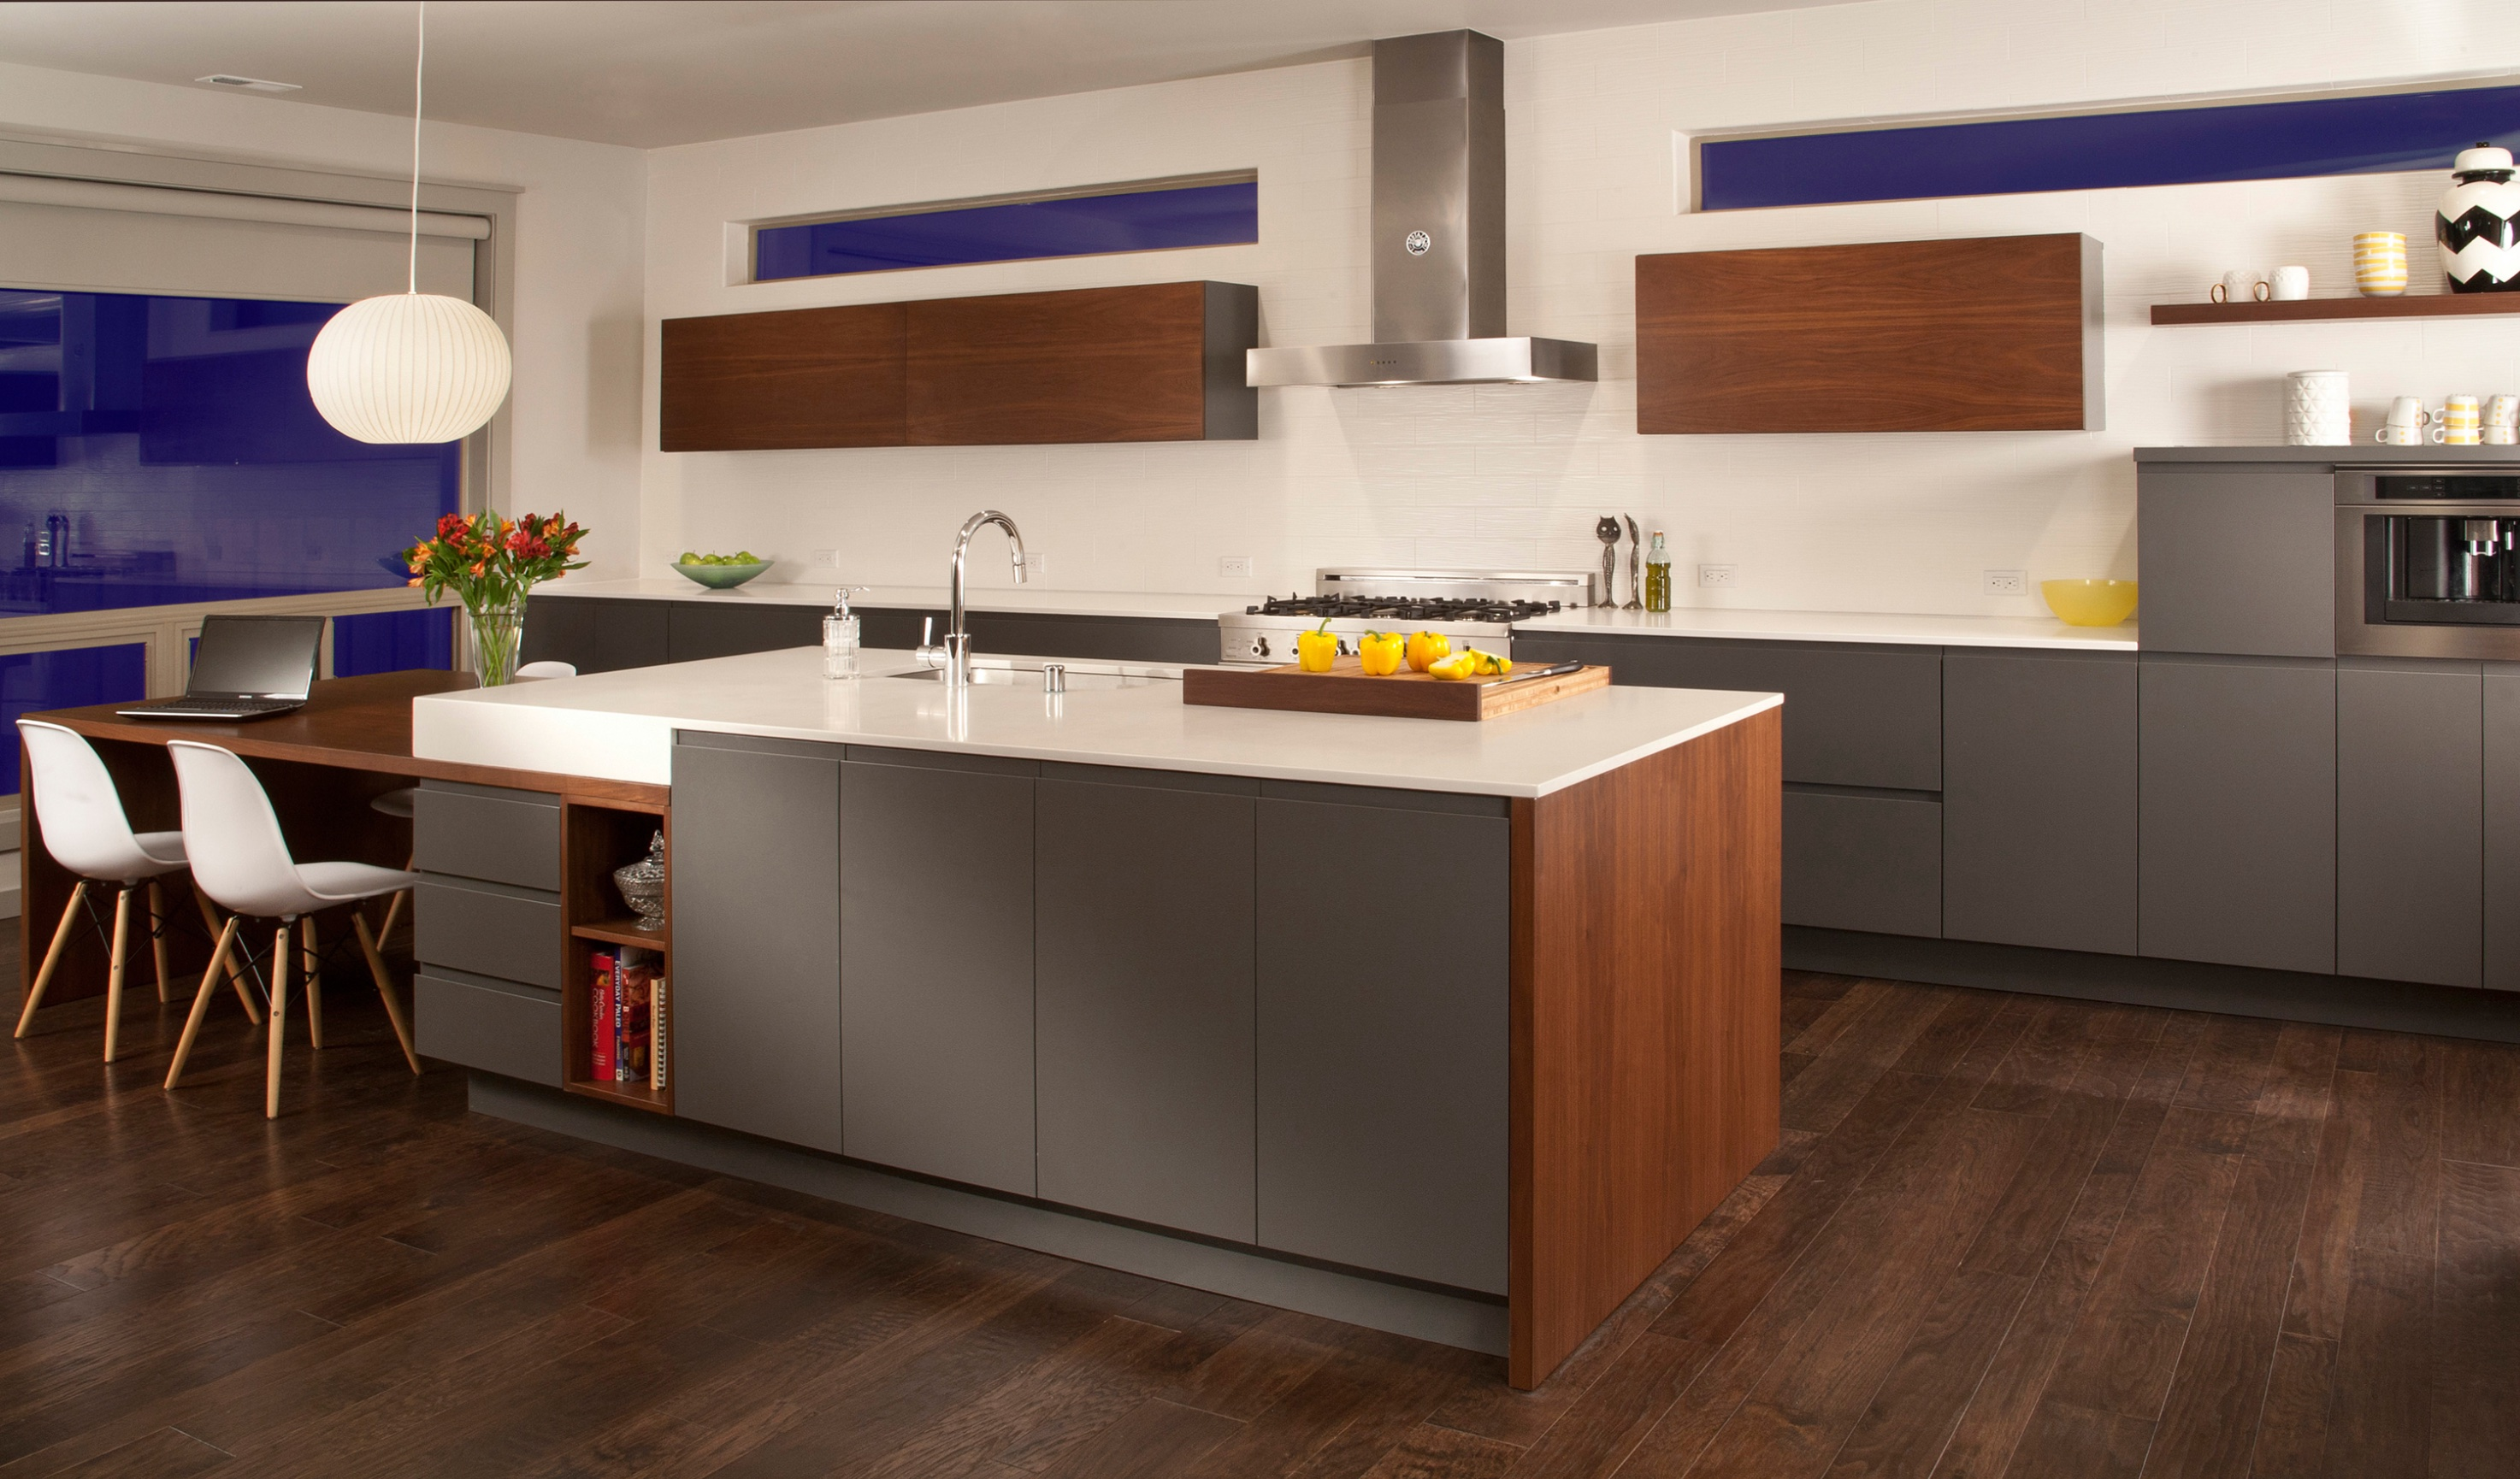 tampa jarrah cabinets new image of my cabinet gorgeous kitchen